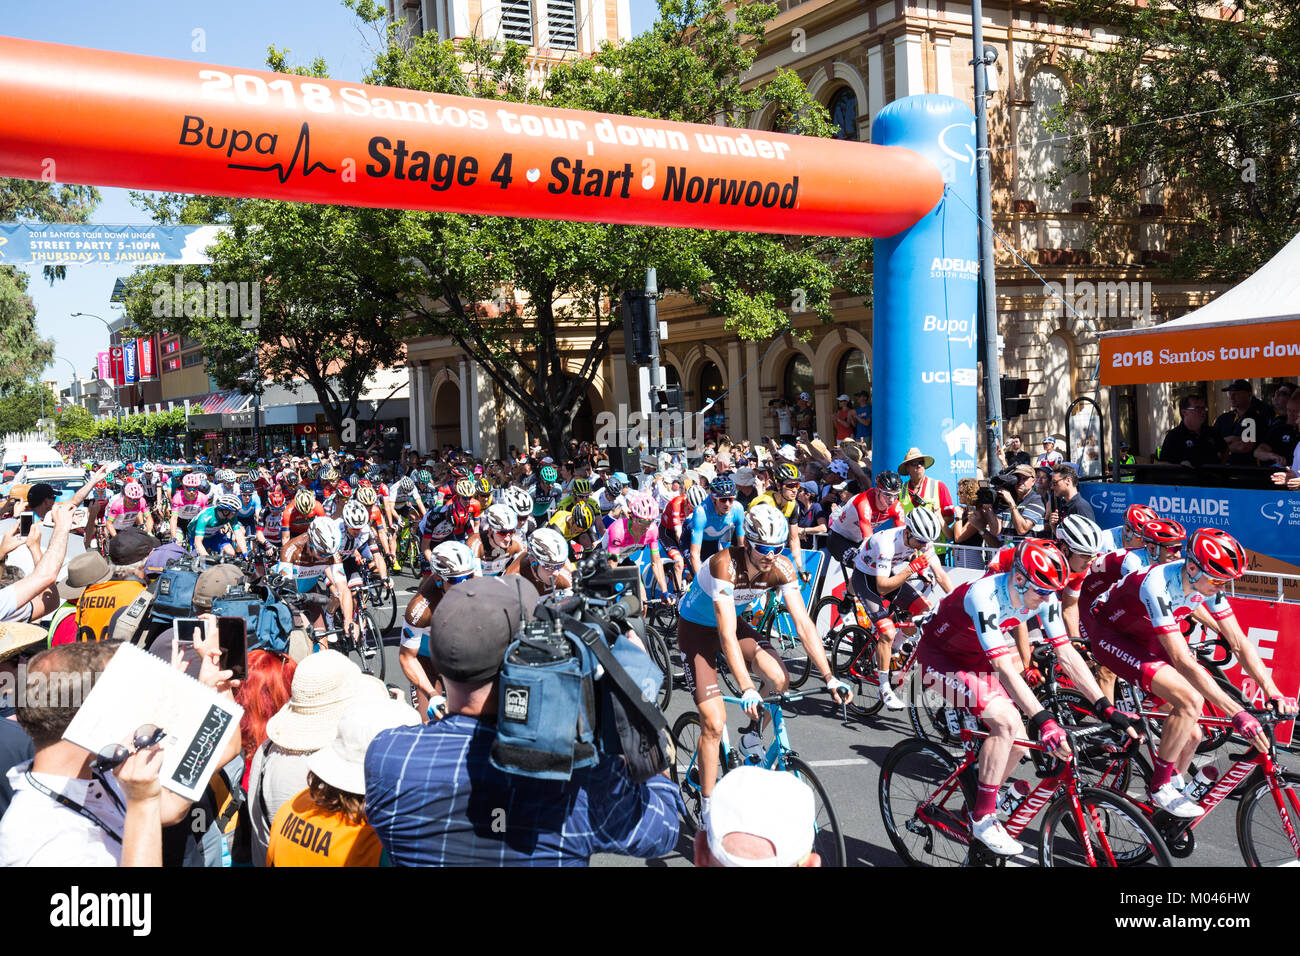 Adelaide Australia. 19th Jan, 2018. Riders starting stage 4 of the 2018 Tour Down Under in Adelaide Australia. 19 - Stock Image